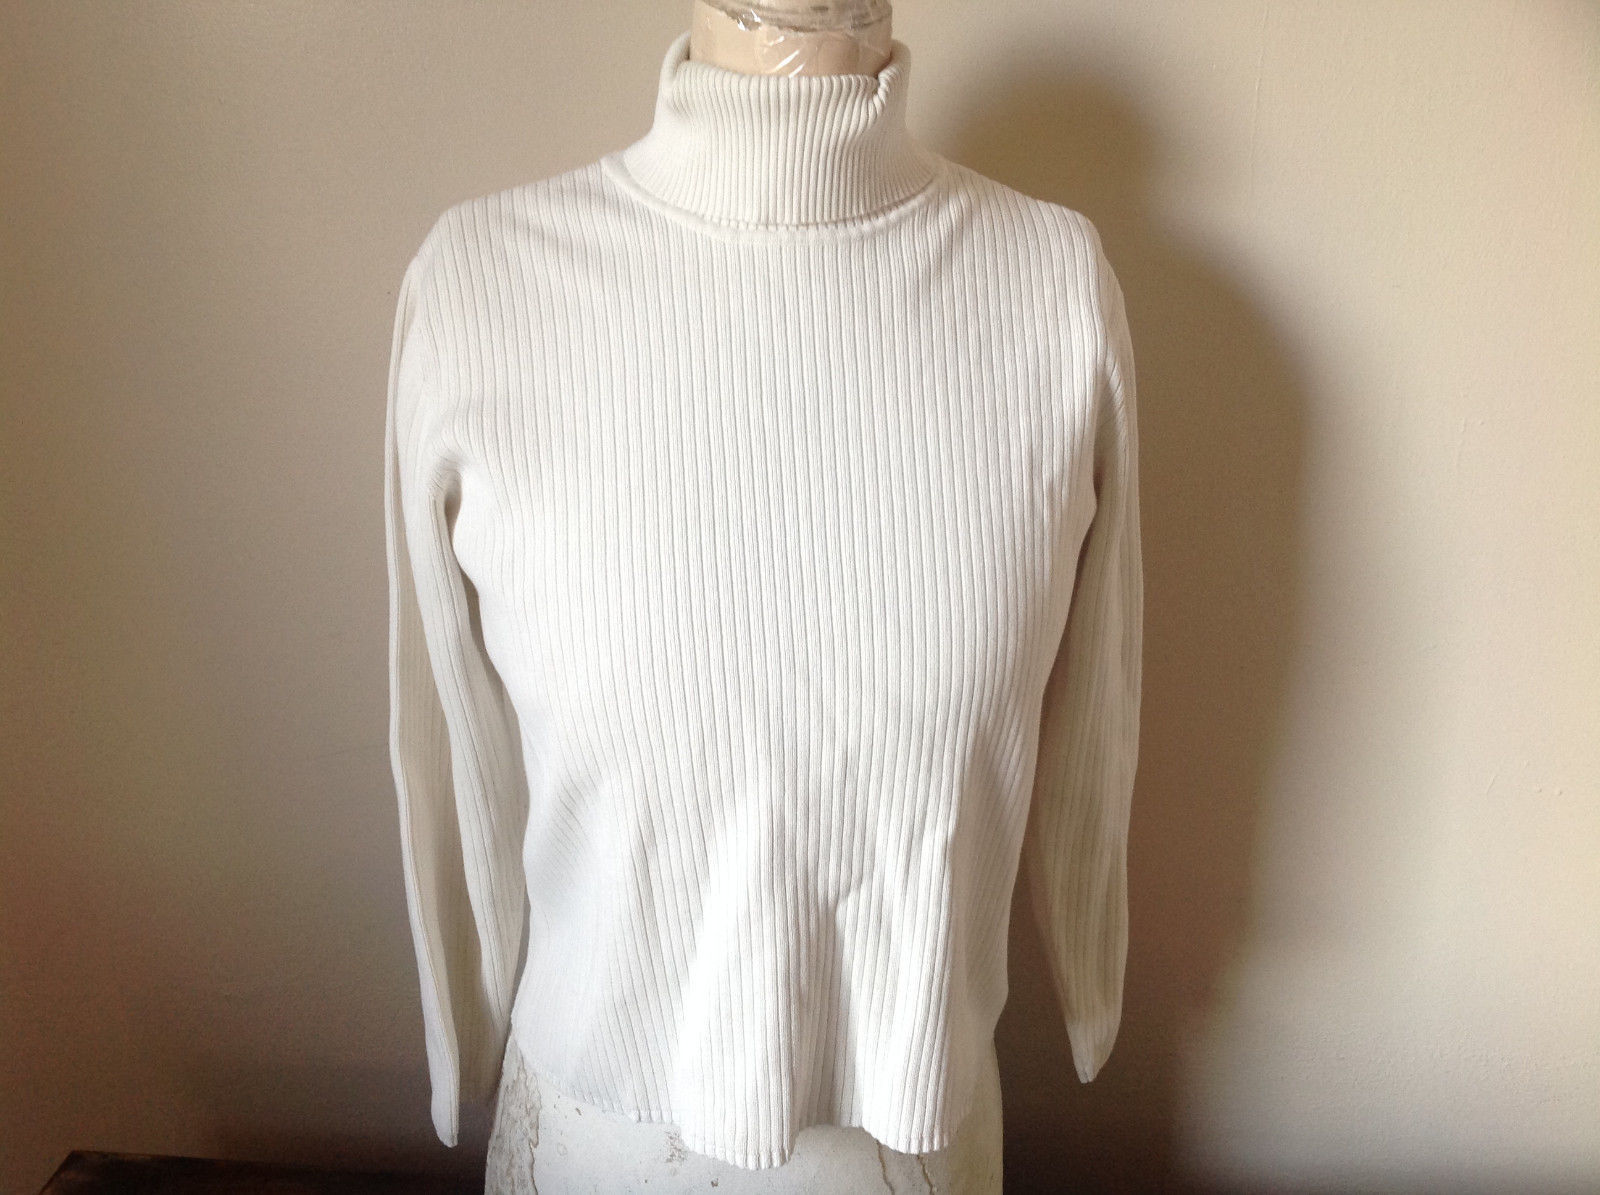 White Long Sleeve Turtleneck Top 100 Percent Cotton Talbots Size Medium